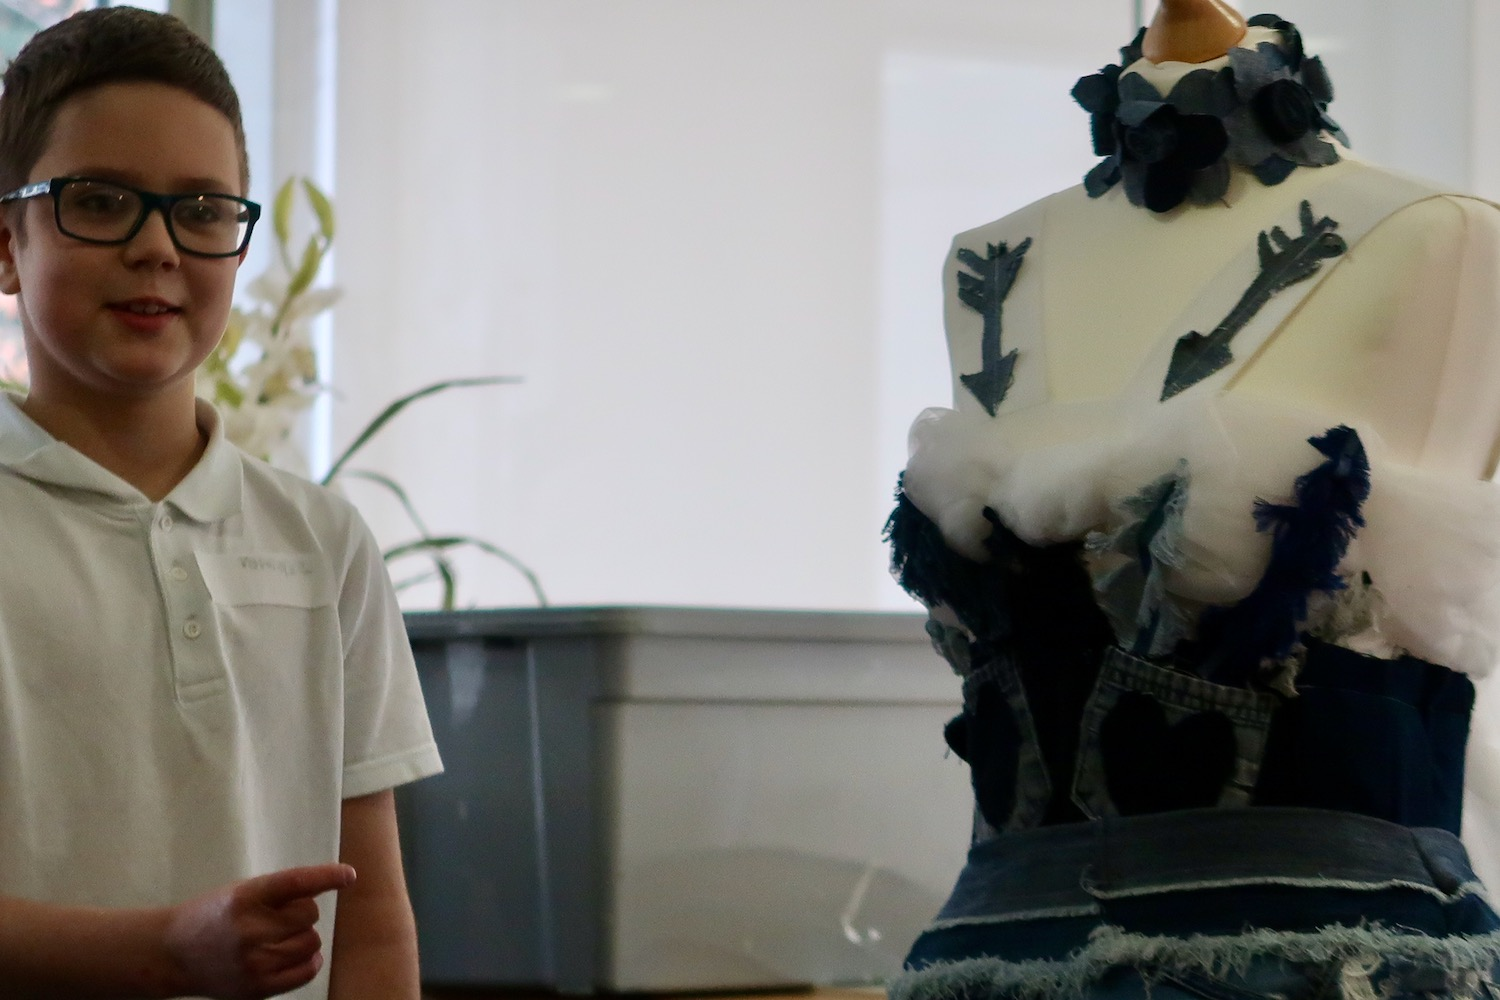 The pupils then went back to the seminar room where they were able to look at Psyche's Dress made by the Fitzy Peters